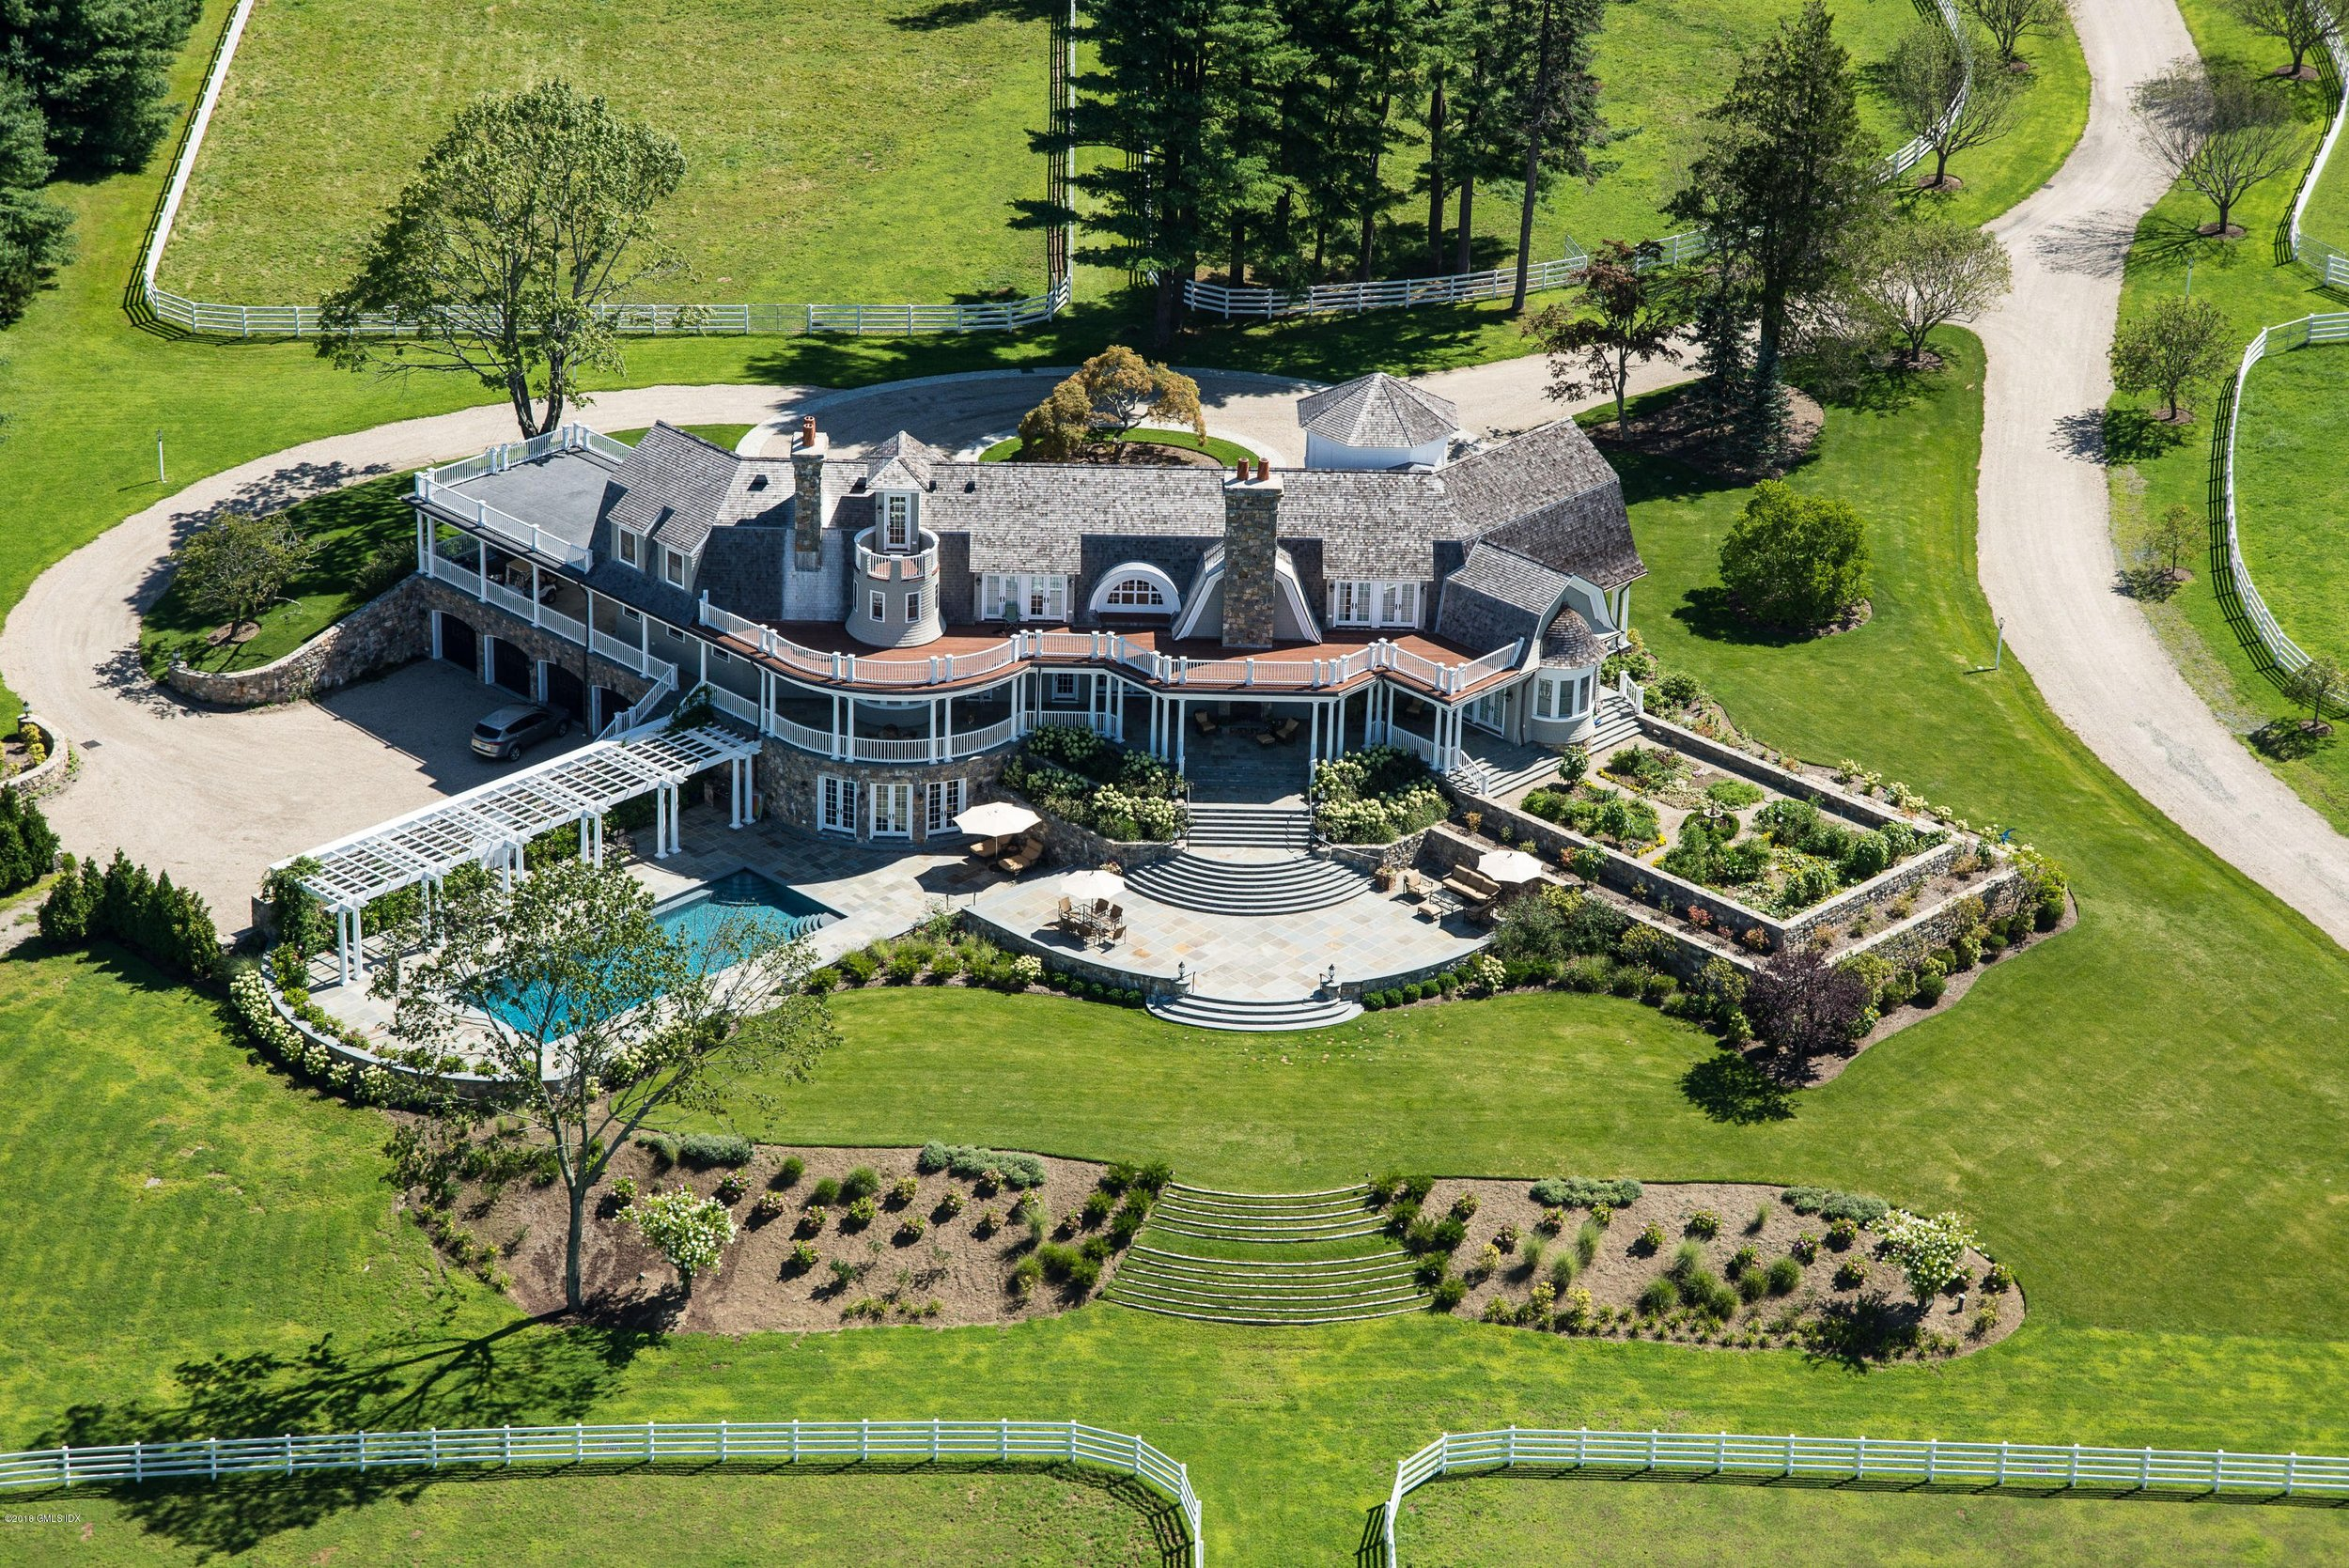 Spec house @ 429 Taconic Road. Priced at $23.5 million in 2013, current price $14.750